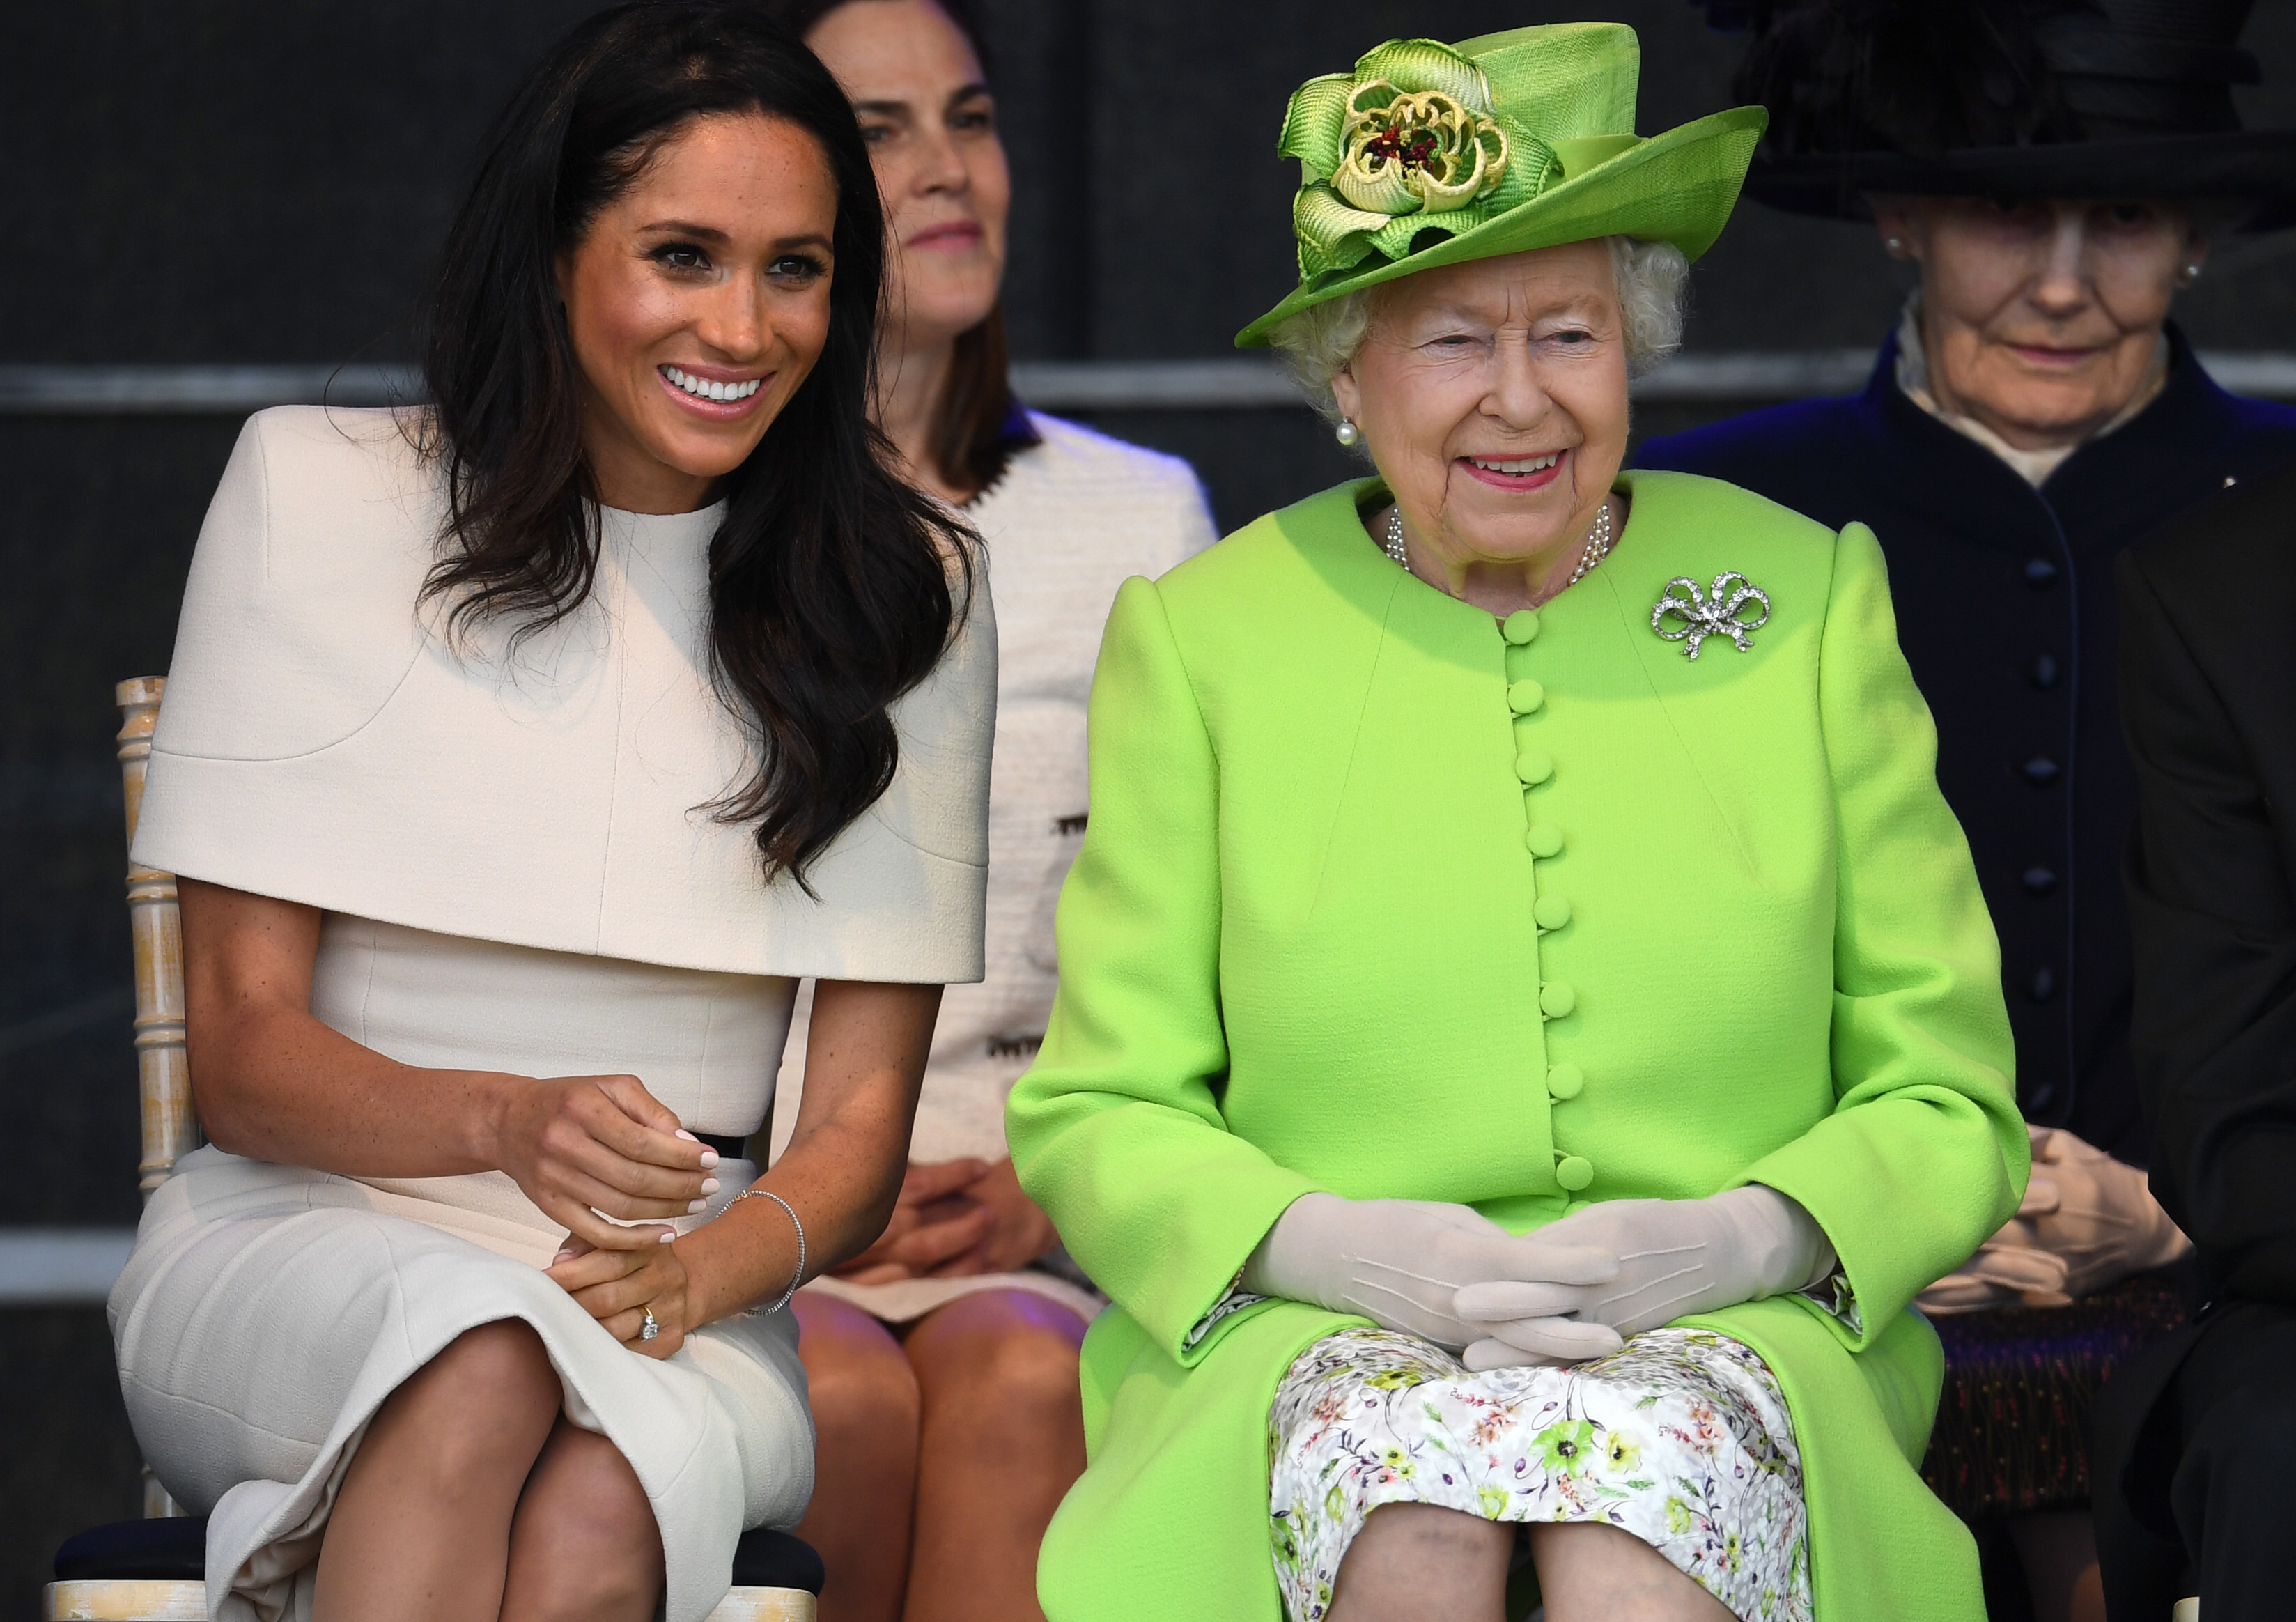 Meghan-Markle-And-Queen-Elizabeth-Set-Their-Purses-On-The-Ground-—-Just-Like-Us